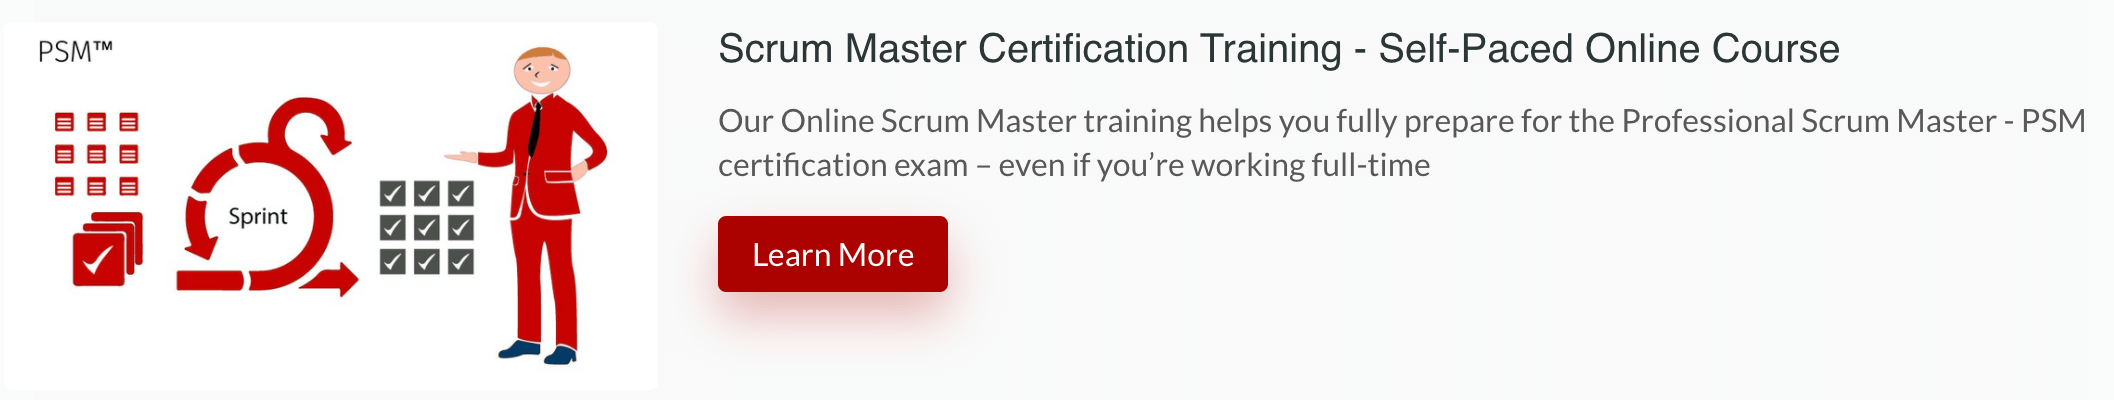 Screen-Shot-2020-07-21-at-16.50.15 Scrum Master Certification Online - Incl. 100% FREE Course Links